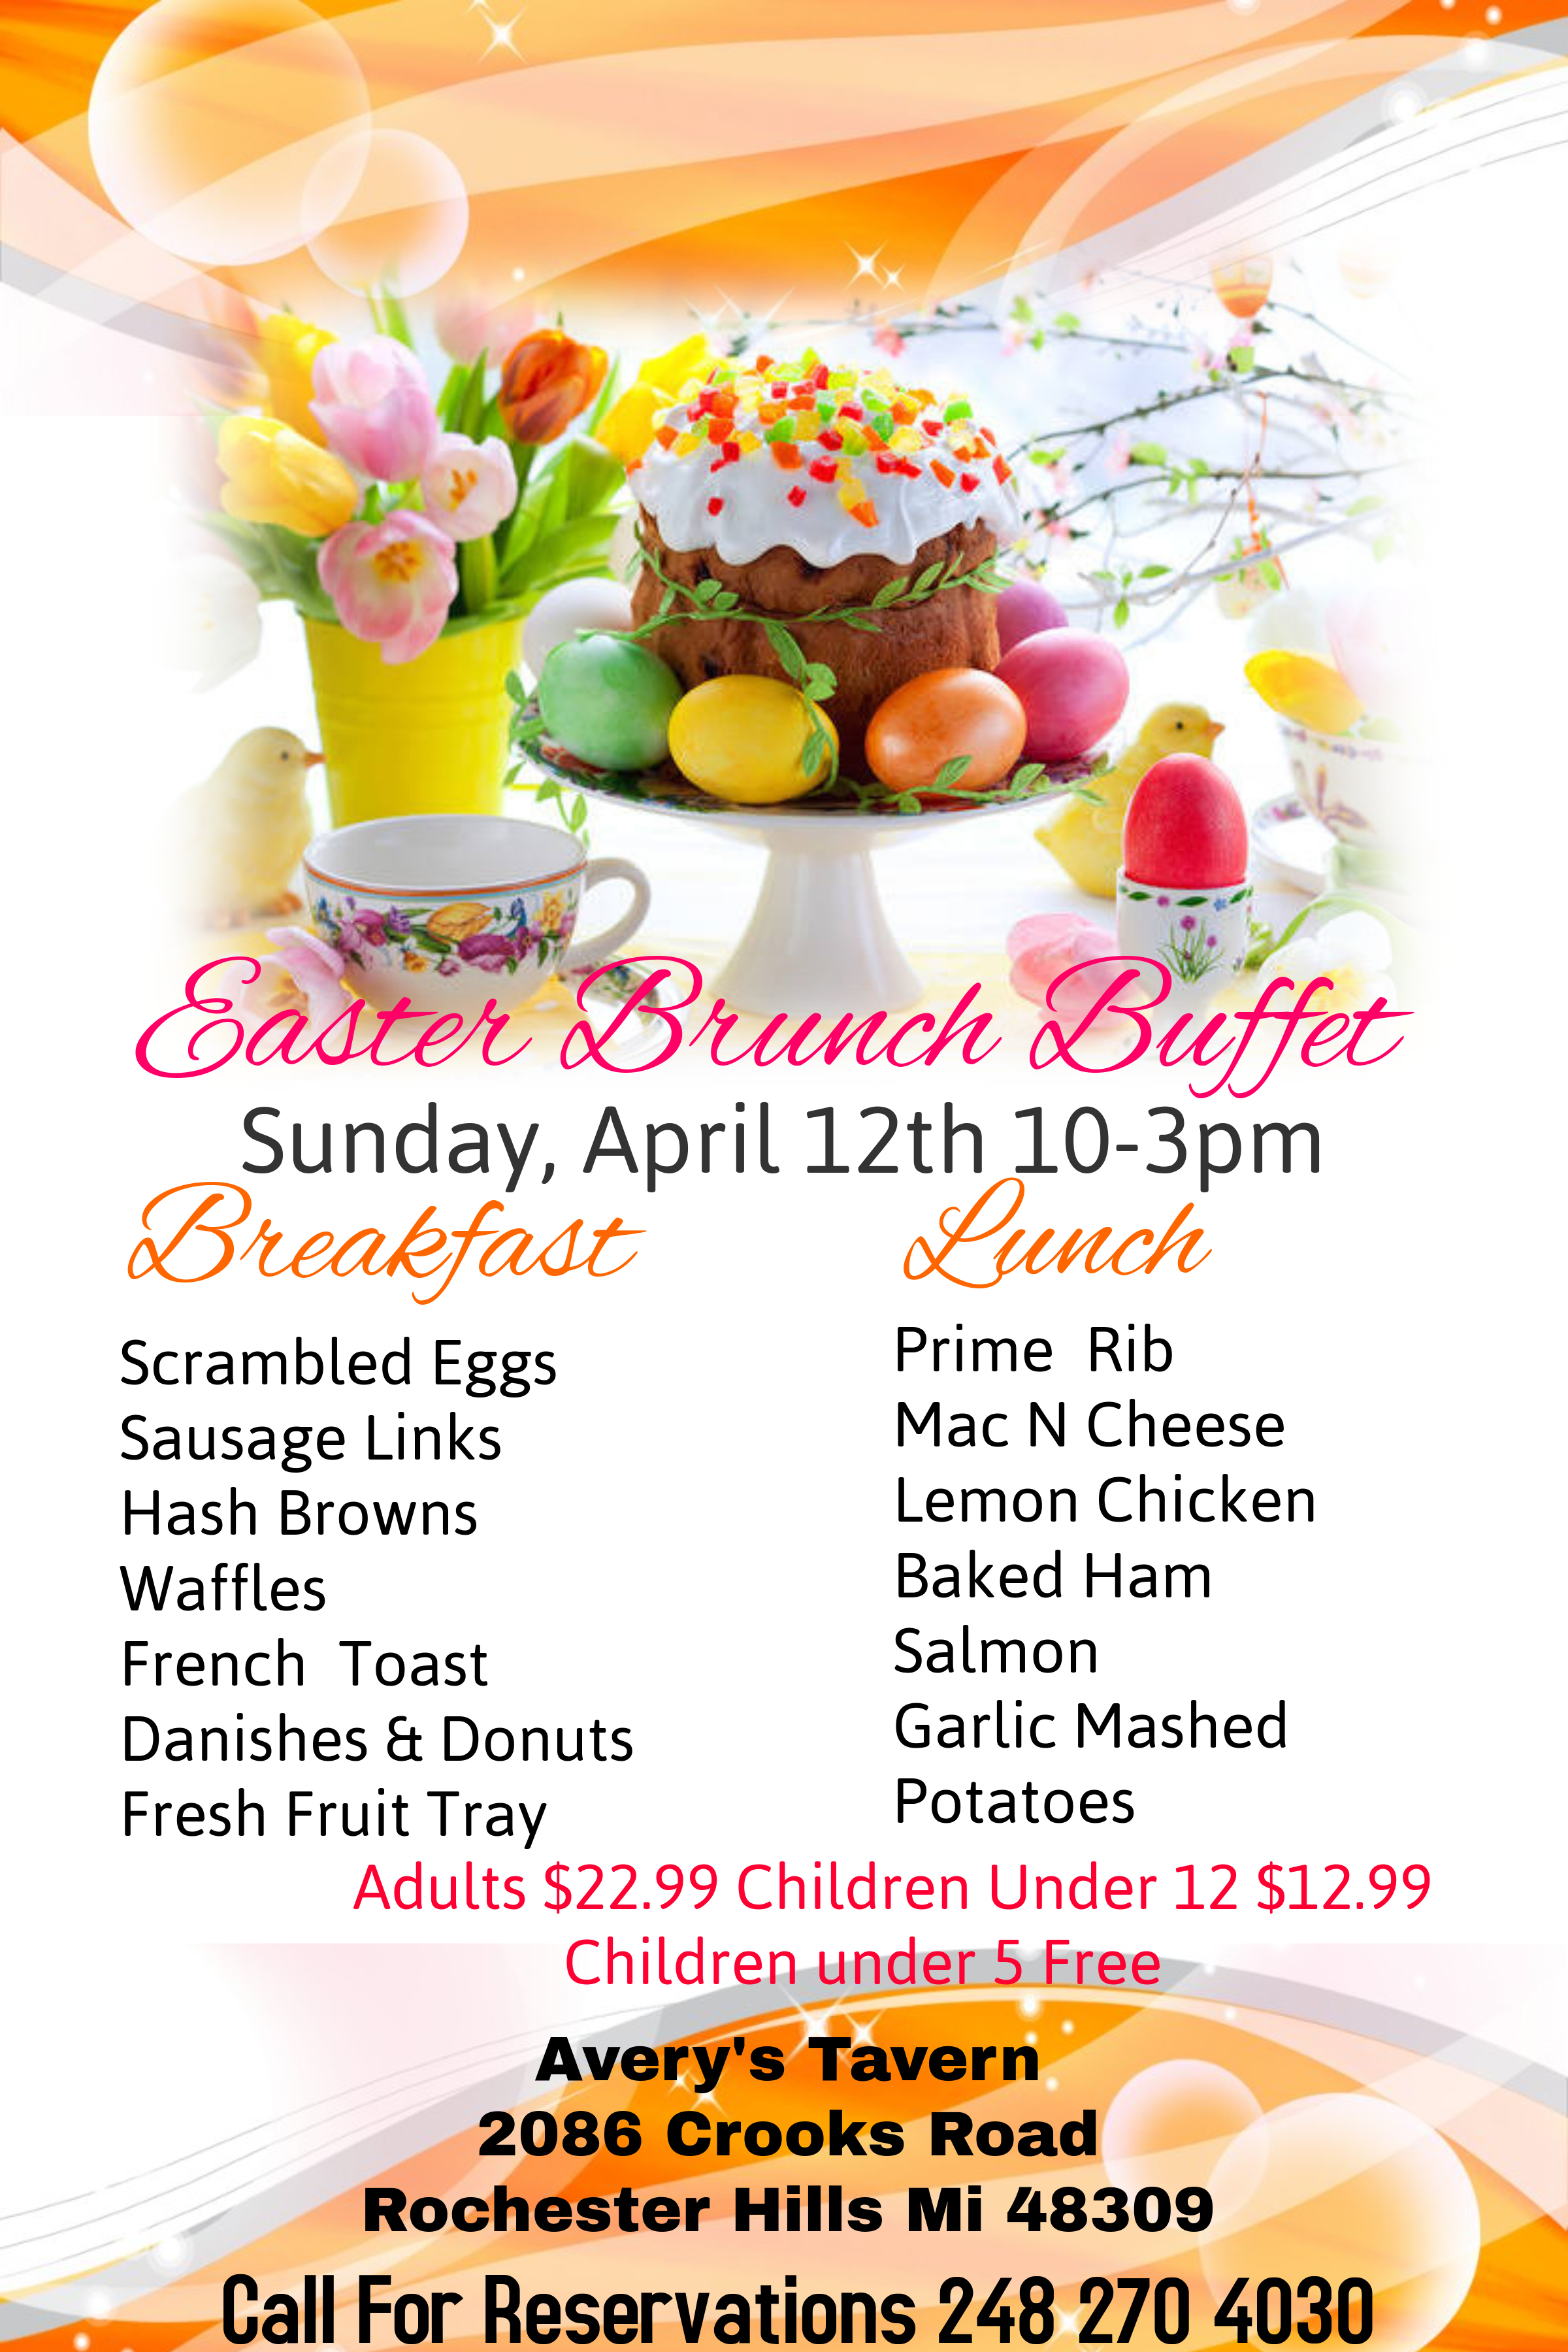 Easter Brunch Buffet Sunday, April 13th 10-3pm   Breakfast : Scrambled Eggs | Sausage Links| Hash Browns | Waffles | French Toast | Danishes & Donuts | Fresh Fruit Tray  Lunch : Prime Rib | Mac N Cheese | Lemon Chicken | Baked Ham | Salmon | Garlic Mashed Potatoes